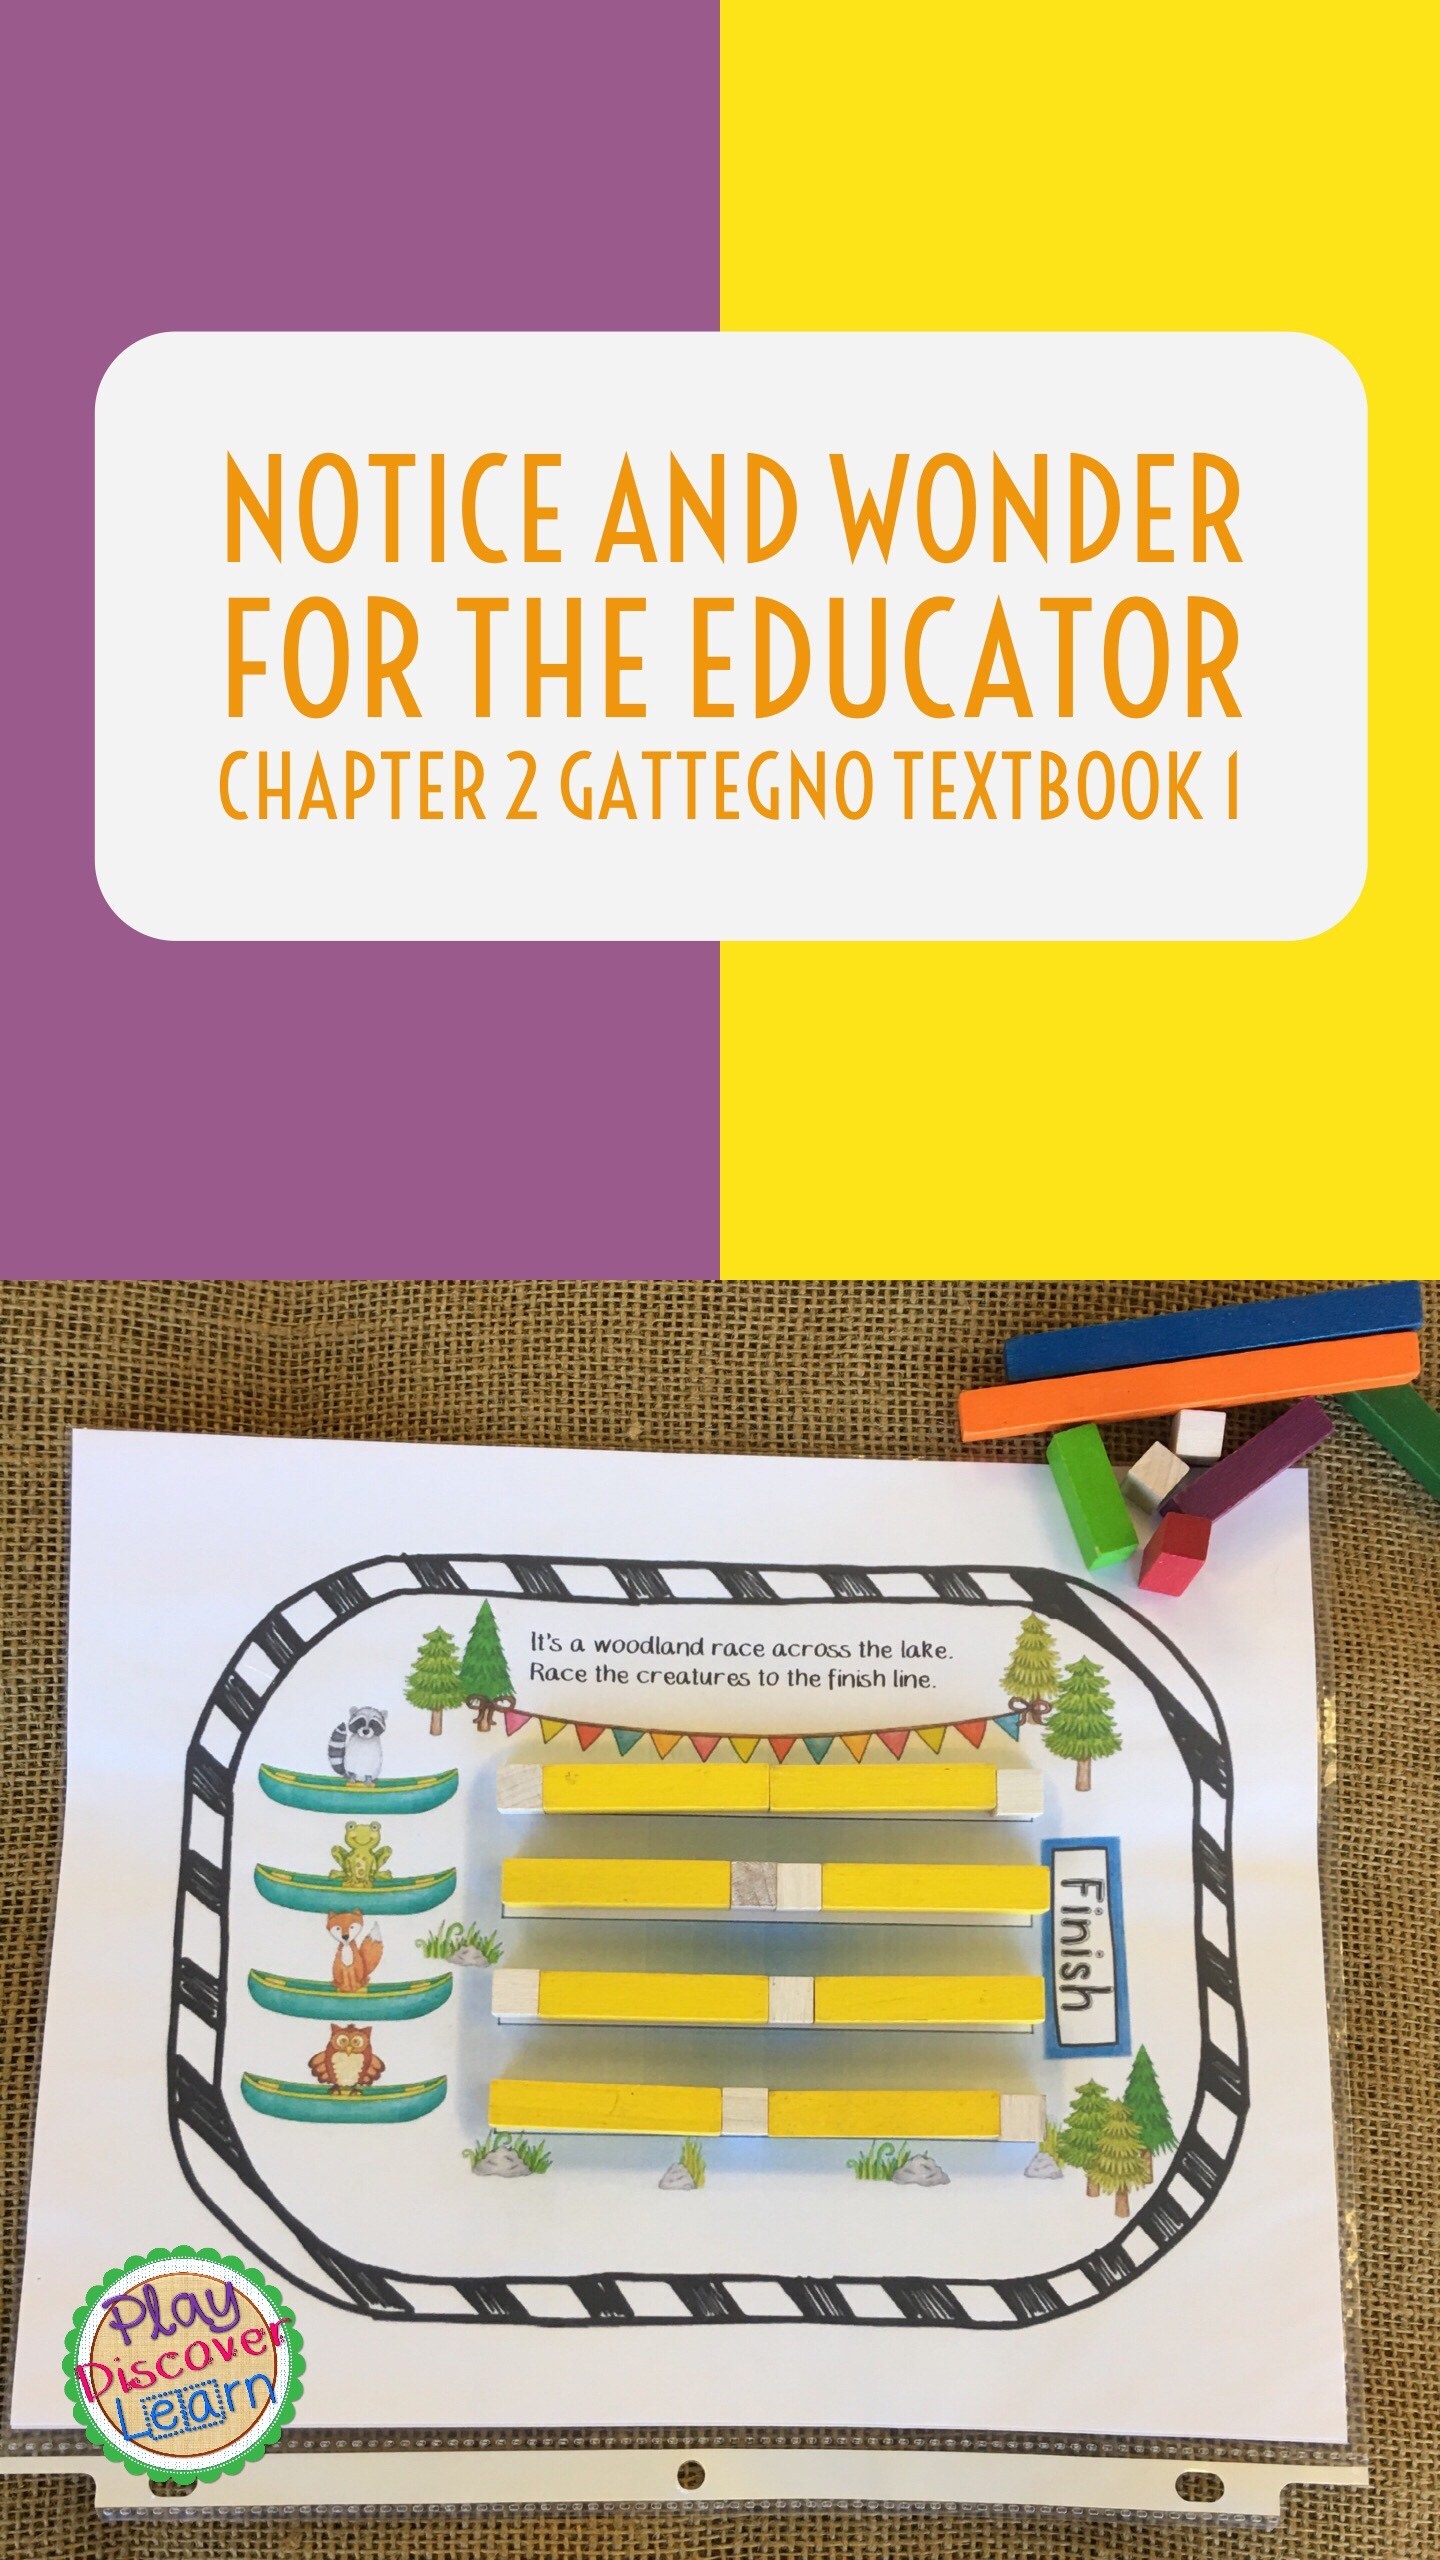 chapter 2 gattegno textbook 1